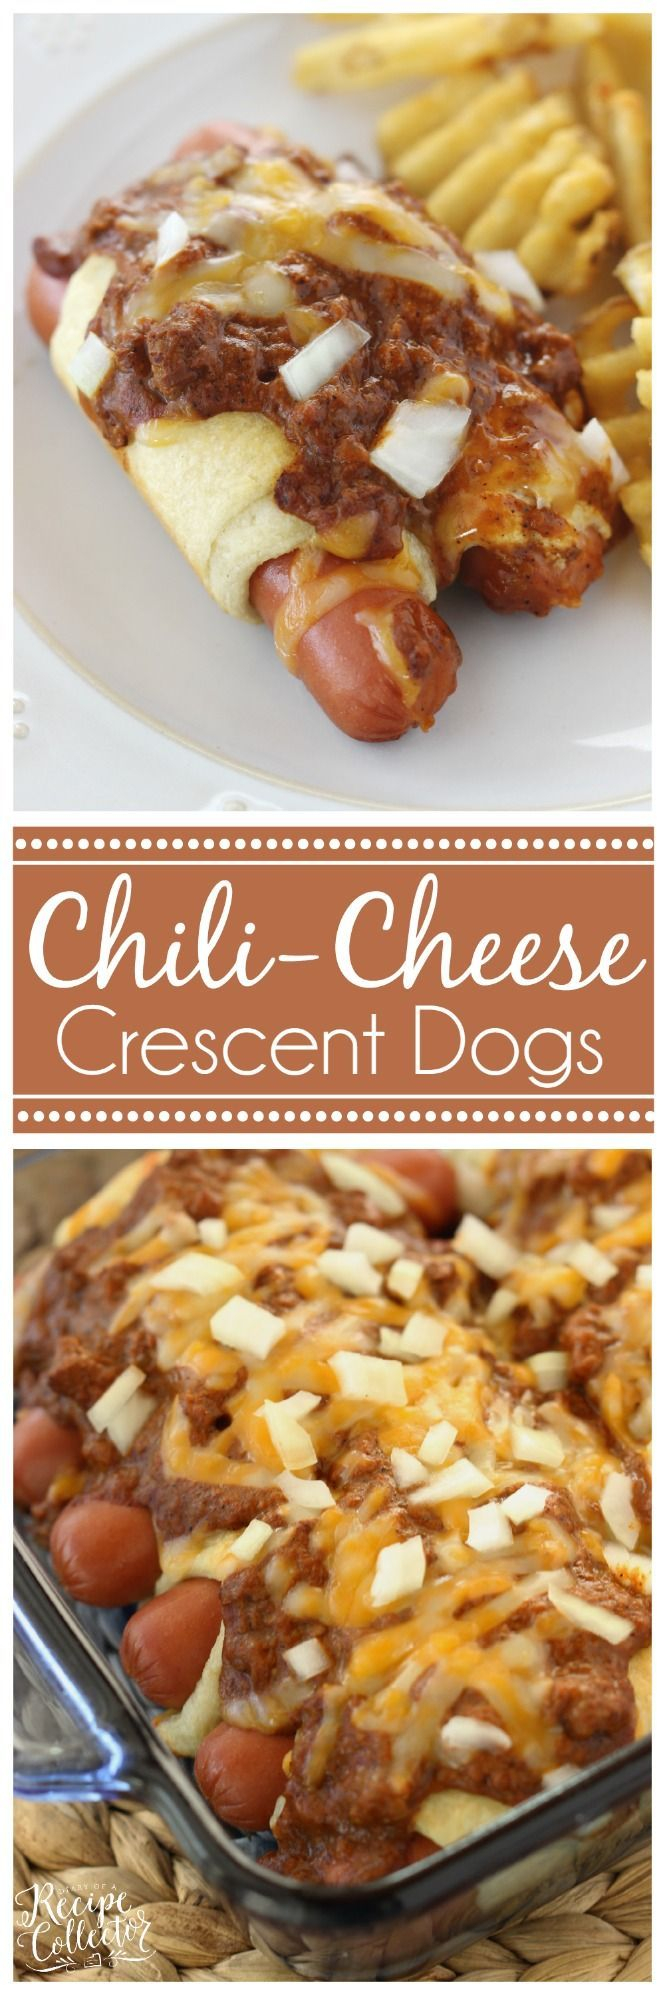 Chili Cheese Crescent Dogs - A super easy and very kid-friendly supper perfect for those busy weeknights!